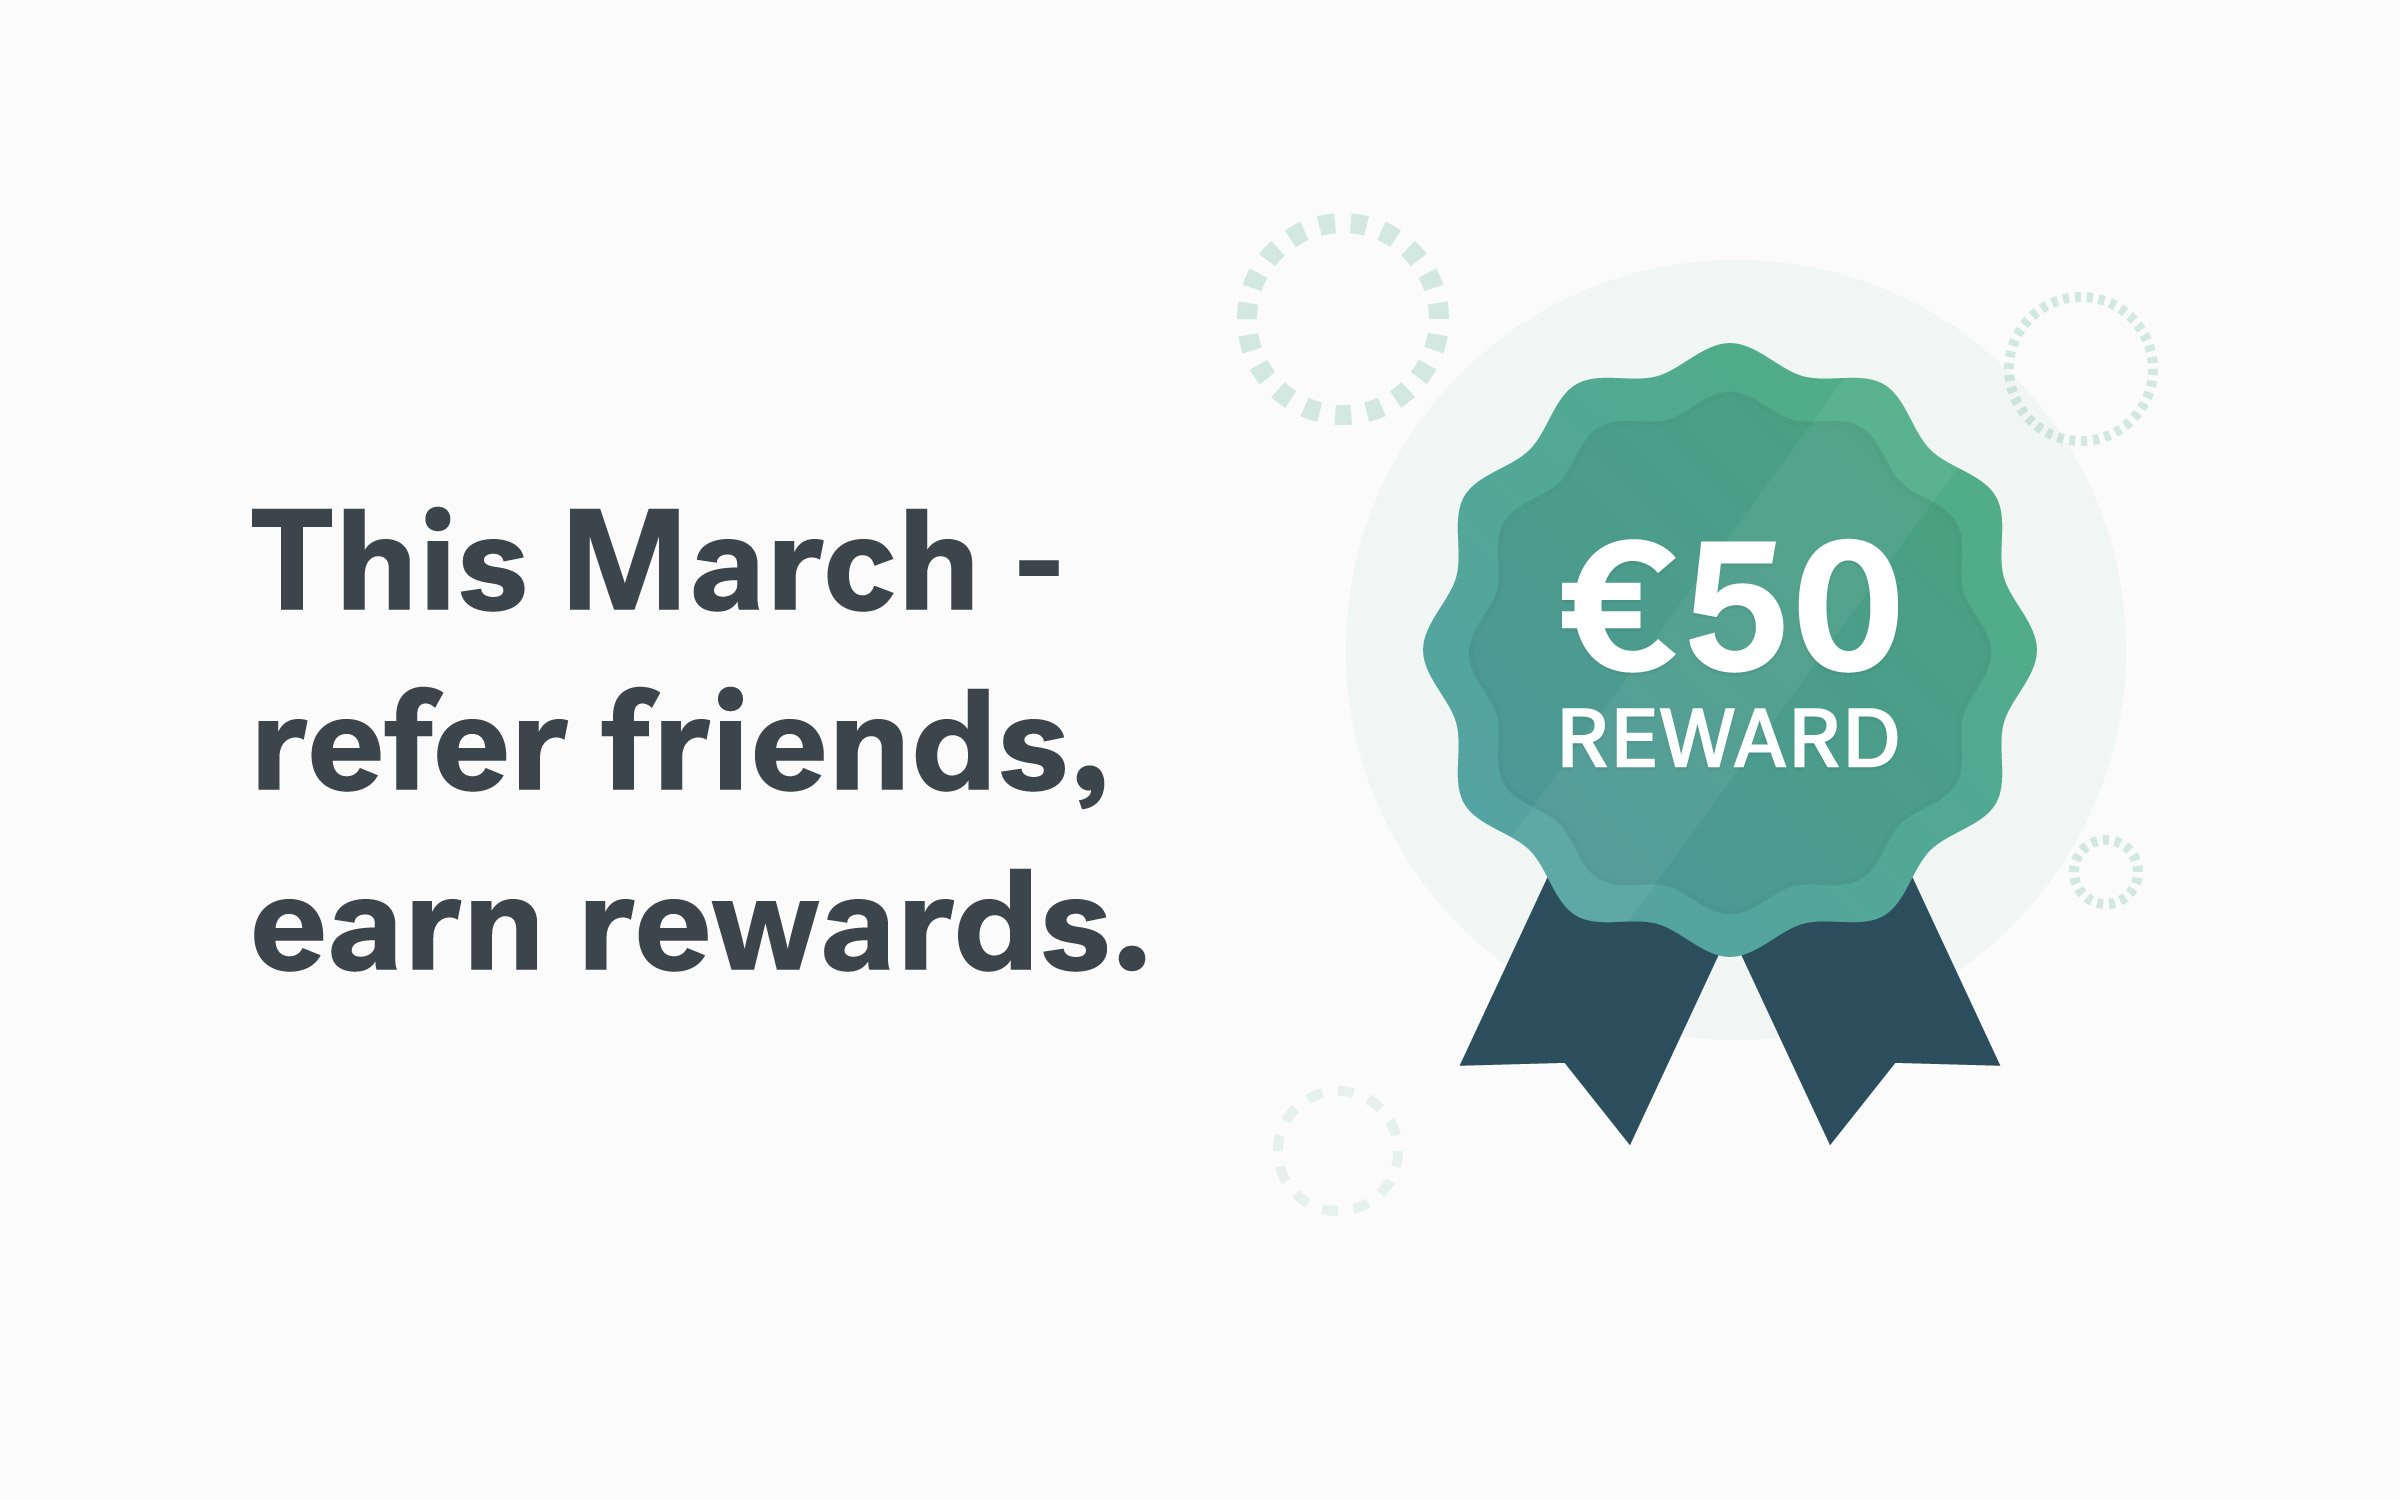 Spring into action - refer a friend and get rewarded!